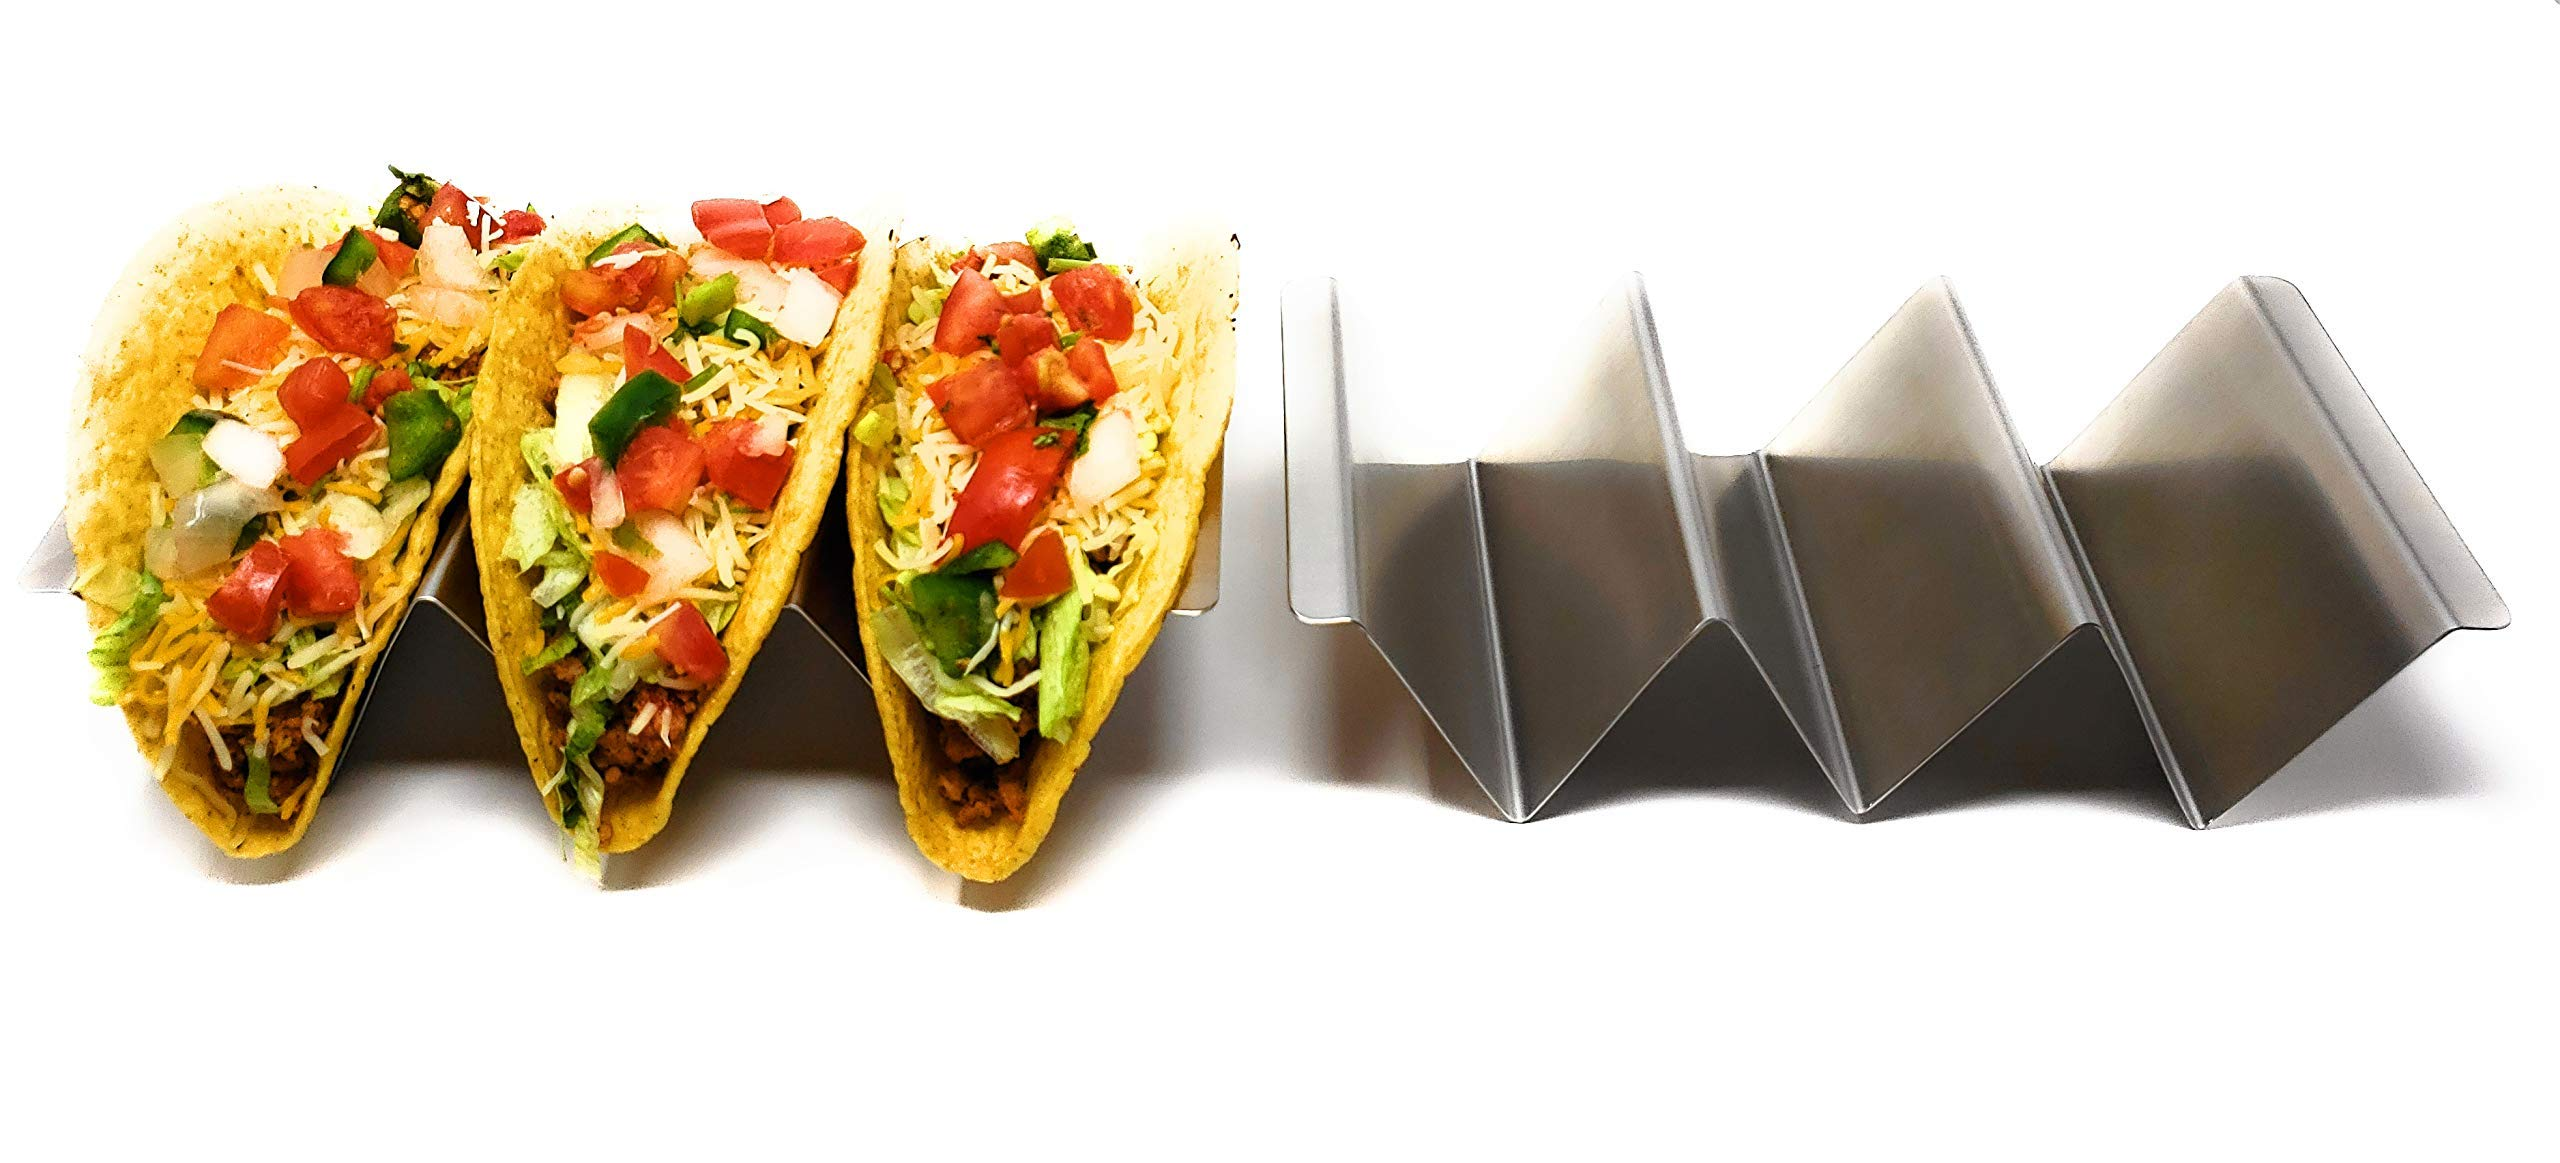 4 Pack- Trendy Stainless Steel Taco Holders With Easy Carry Handles. Taco Stands Holds Up To 3 Tacos Each. Oven, Grill and Dishwasher Safe